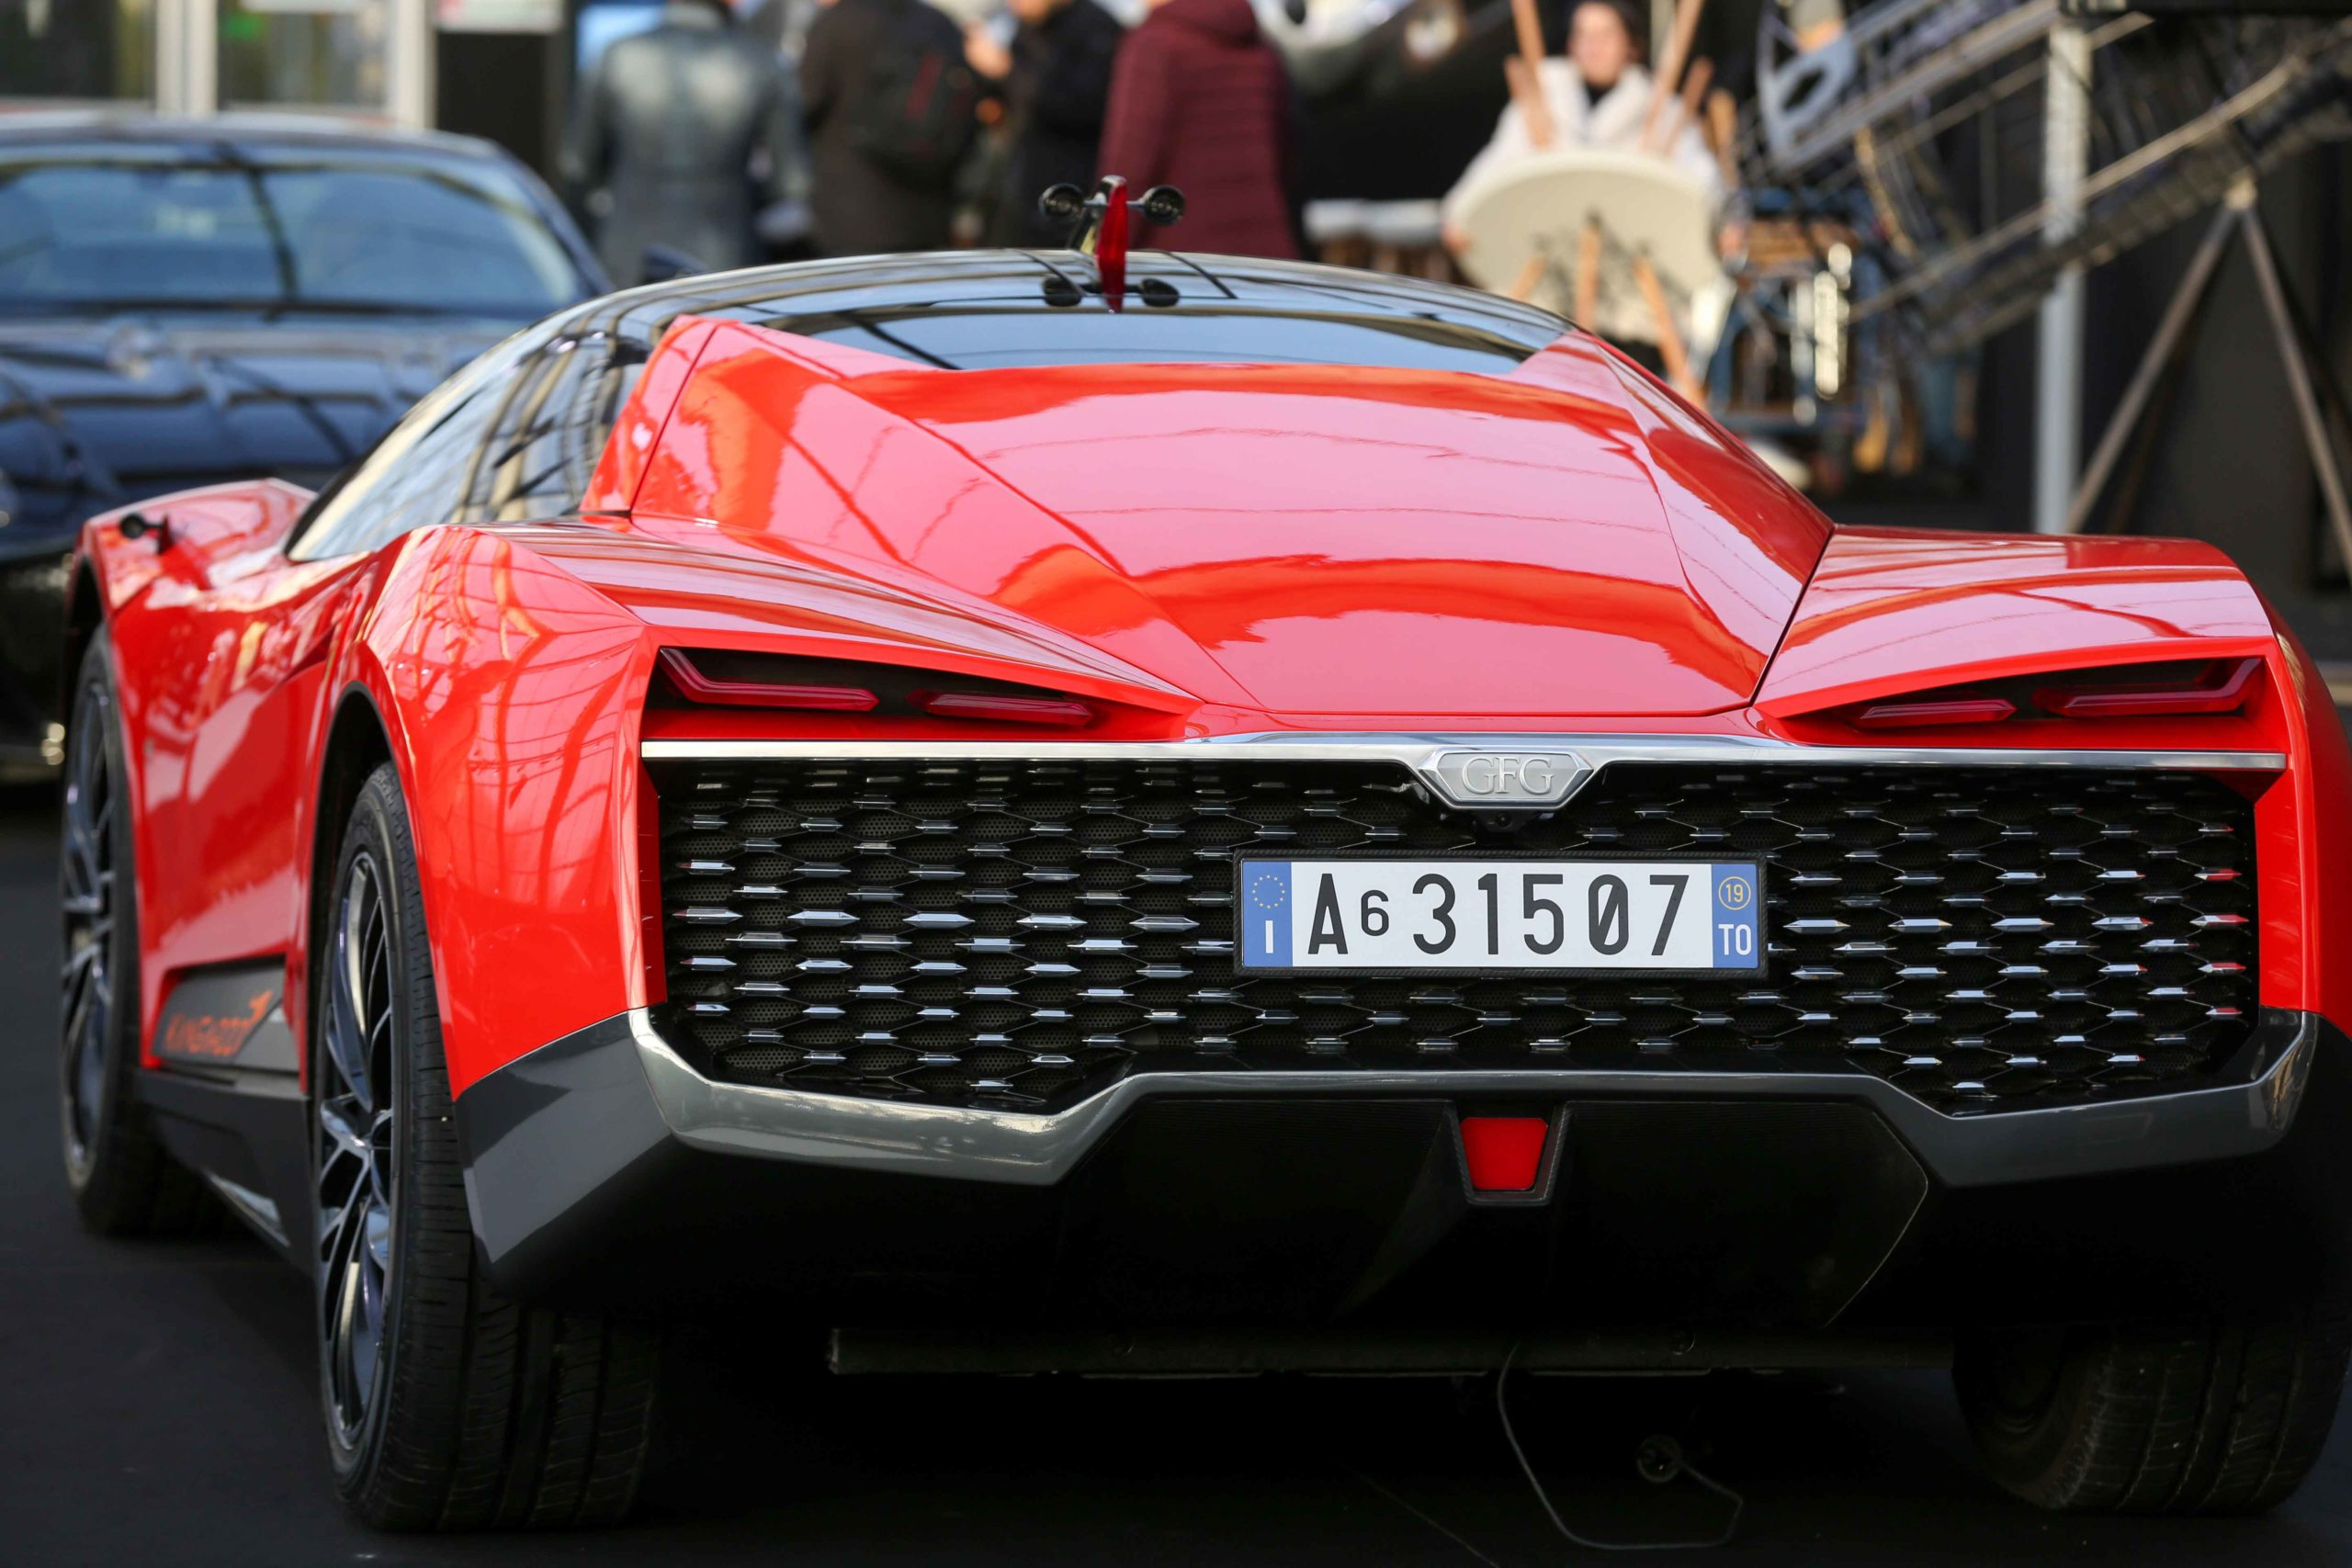 A GFG Style Kangaroo is displayed during the press day of the 2020 concept-cars exhibition and automobile design in Paris on January 20, 2020. The latest concept-cars and supercars are displayed during this exhibition where the greatest designers of the wo